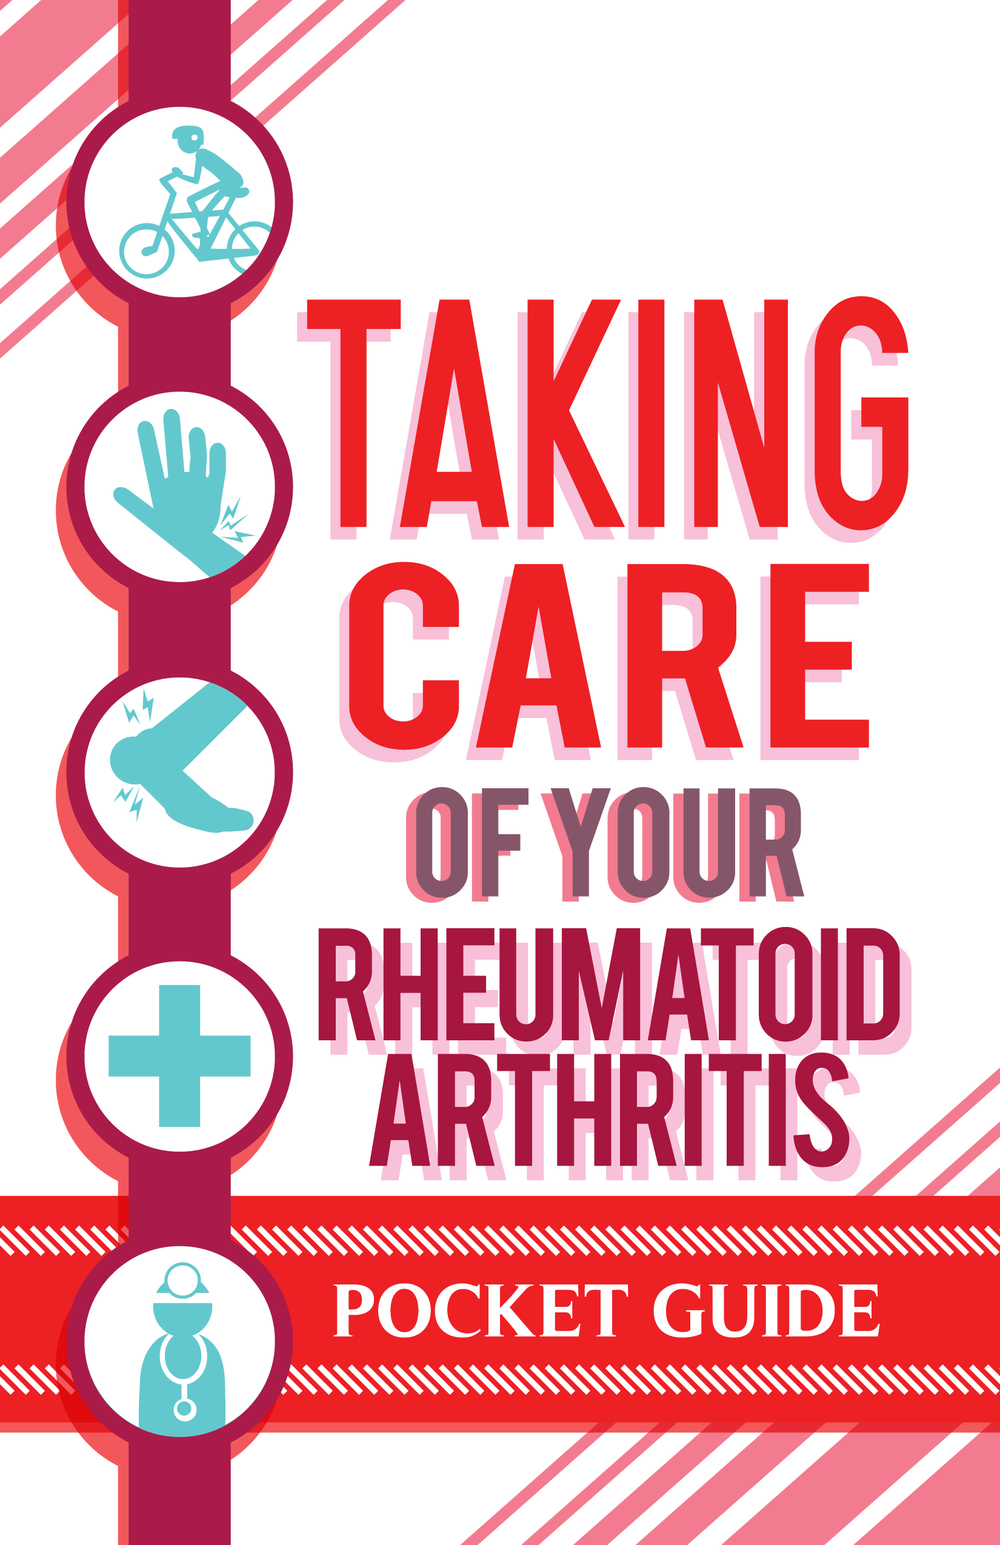 TAKING CARE OF YOUR RHEUMATOID ARTHRITIS: